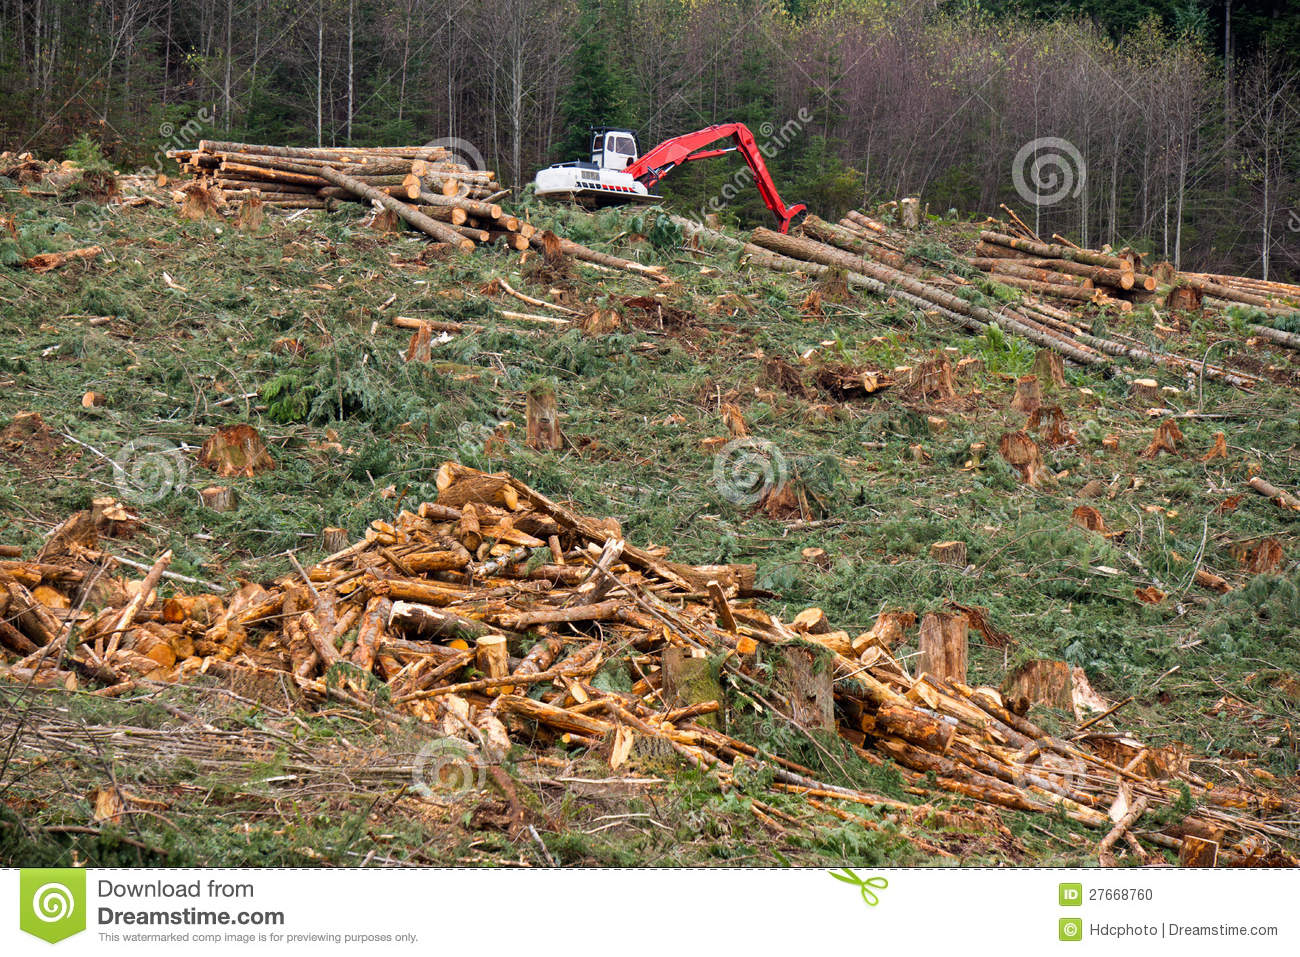 Clearcut logging in the Pacific Northwest